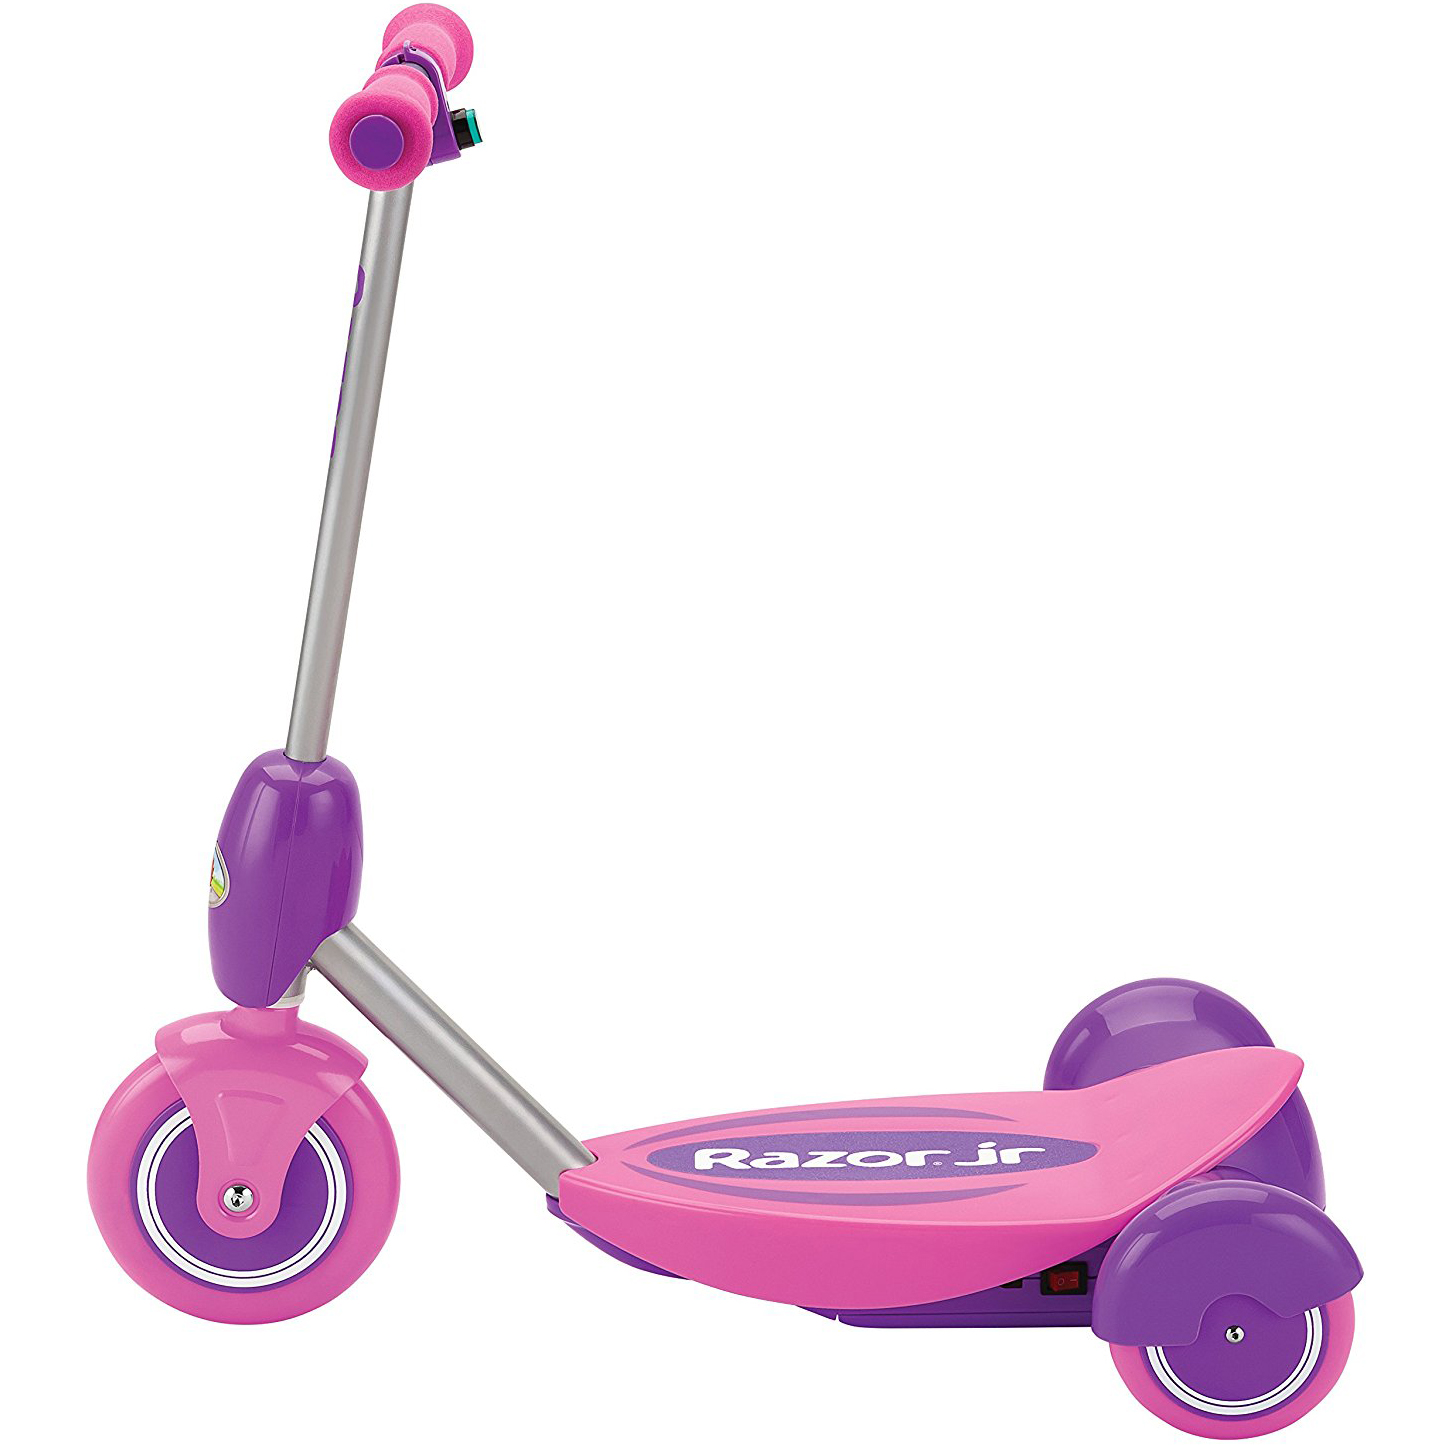 razor junior lil 39 e 2 mph tripod 6v battery electric scooter for kids 3 pink ebay. Black Bedroom Furniture Sets. Home Design Ideas